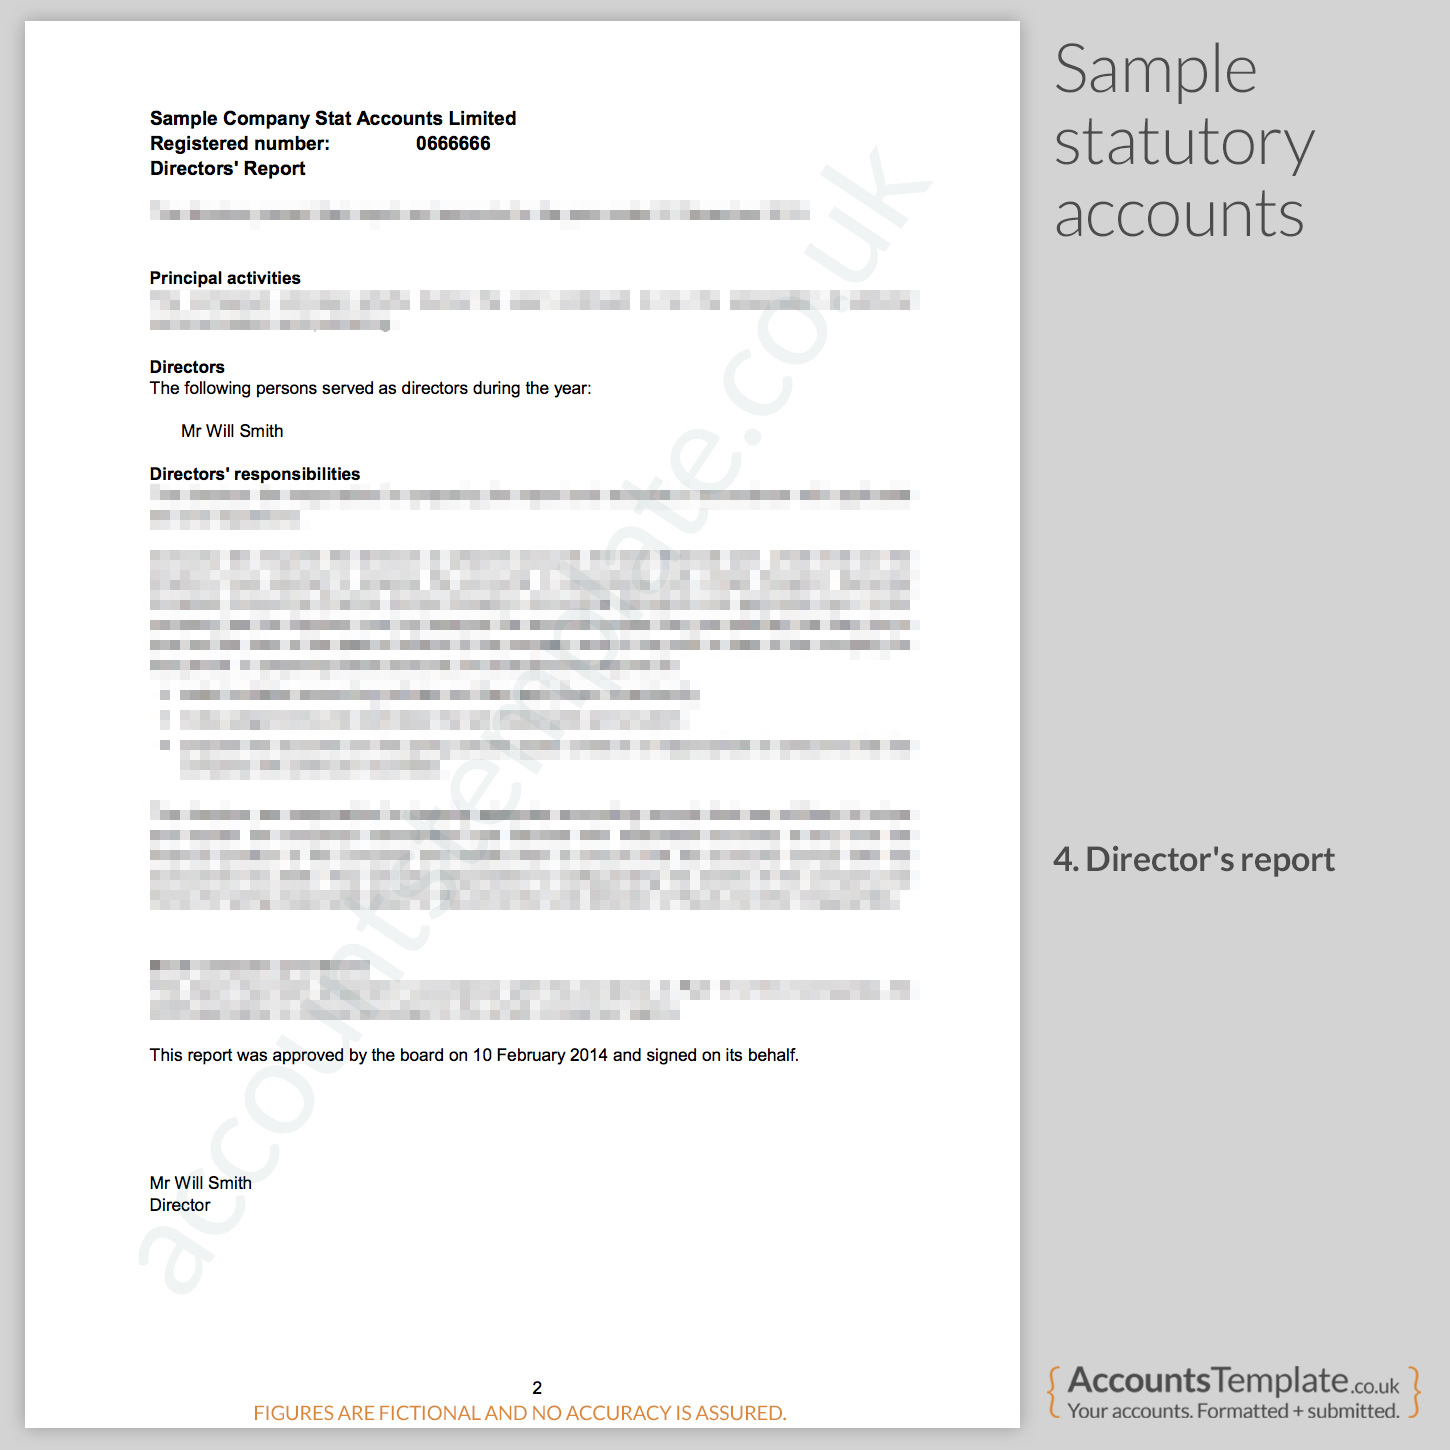 a guide to the statutory accounts format accounts template